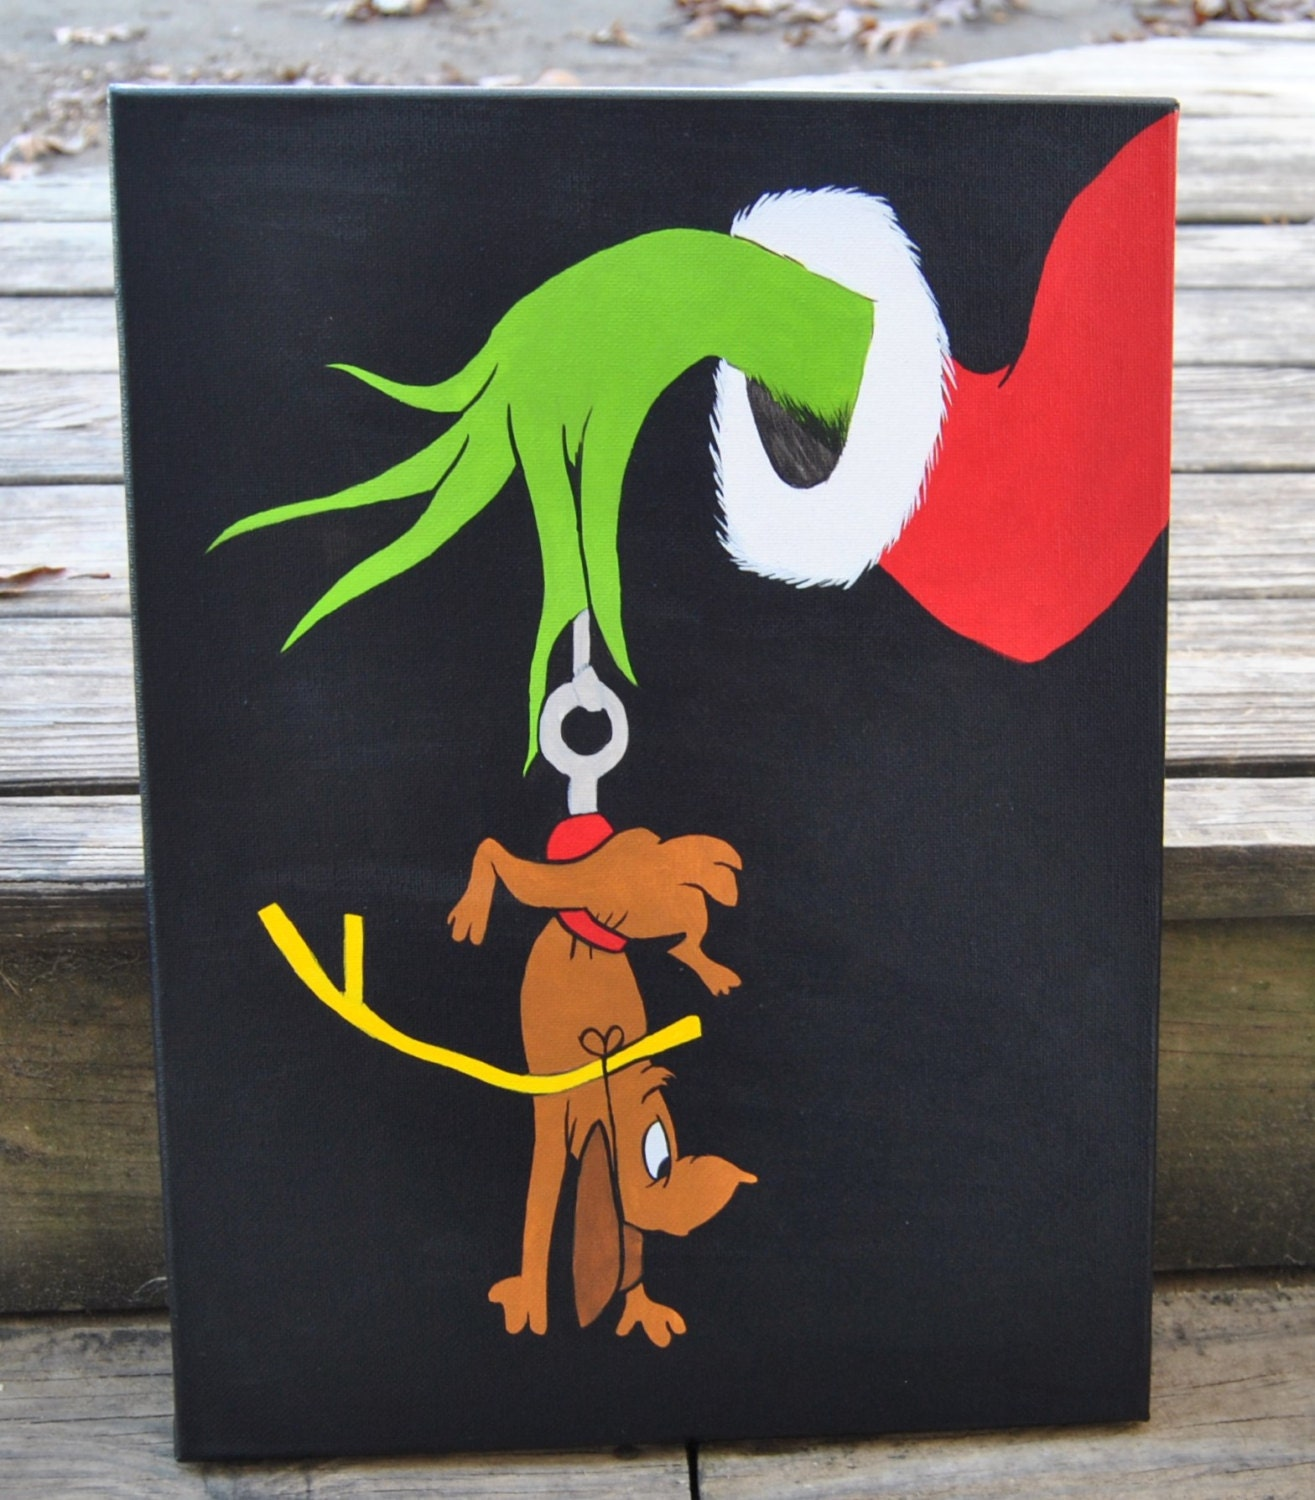 How The Grinch Stole Christmas Canvas Painting Max Grinch Wall